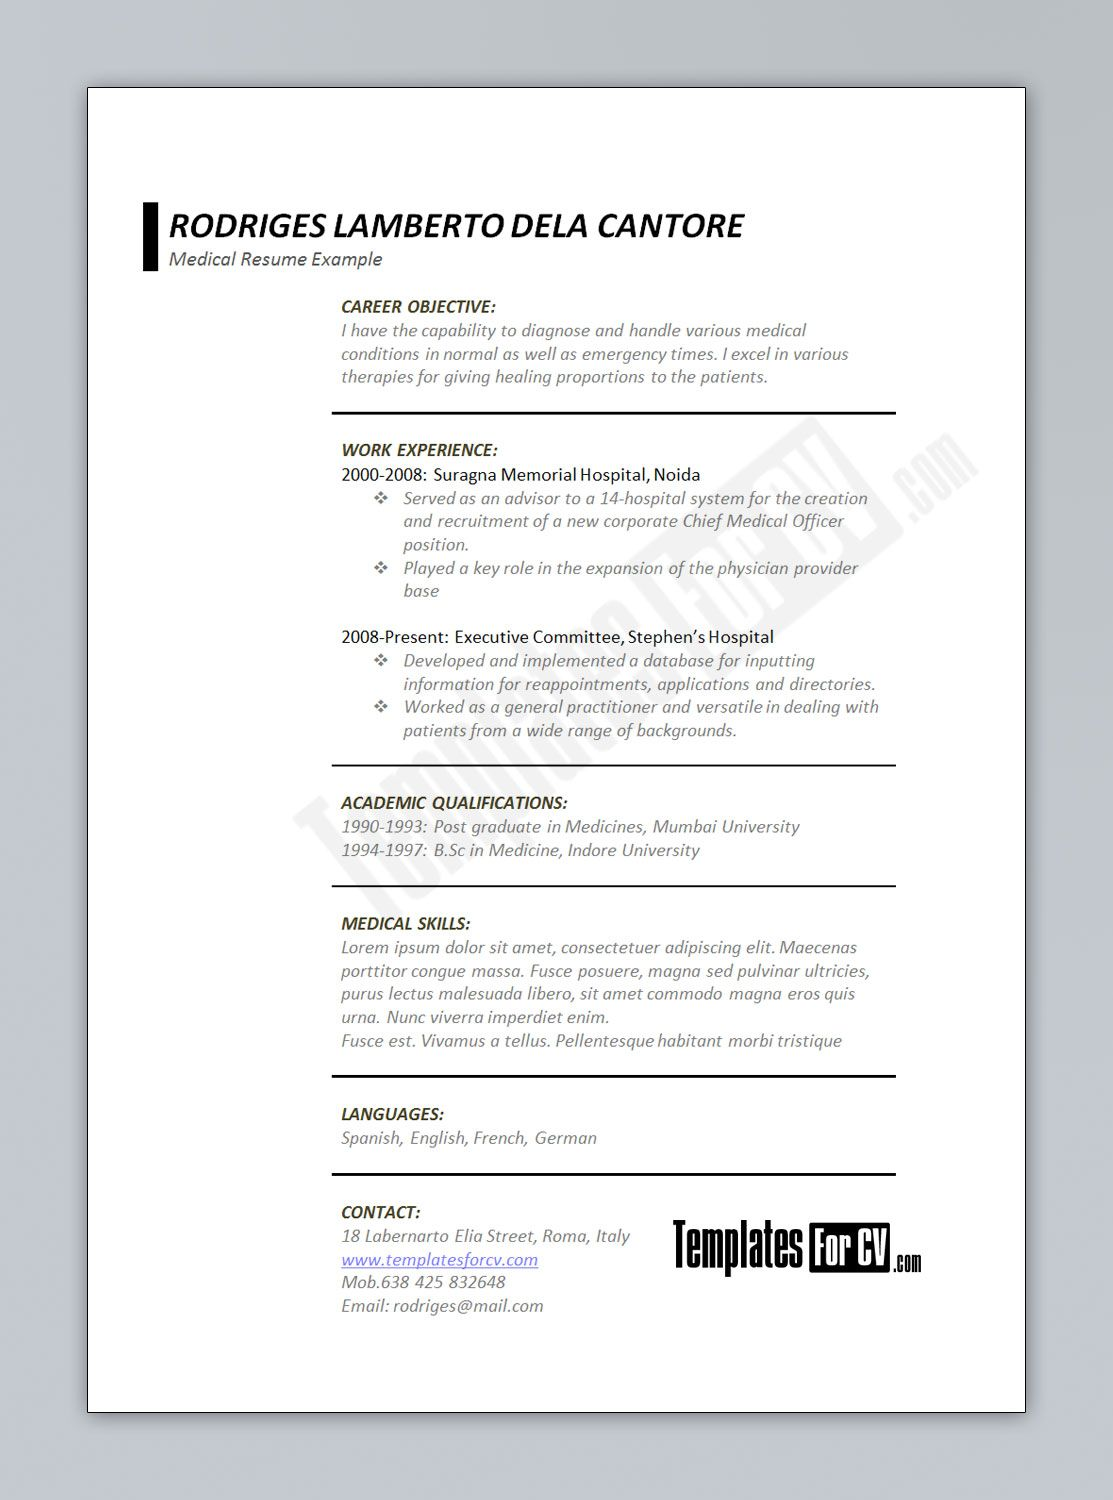 Medical Cv Template #Medical #Cv #Template | Cv Templates